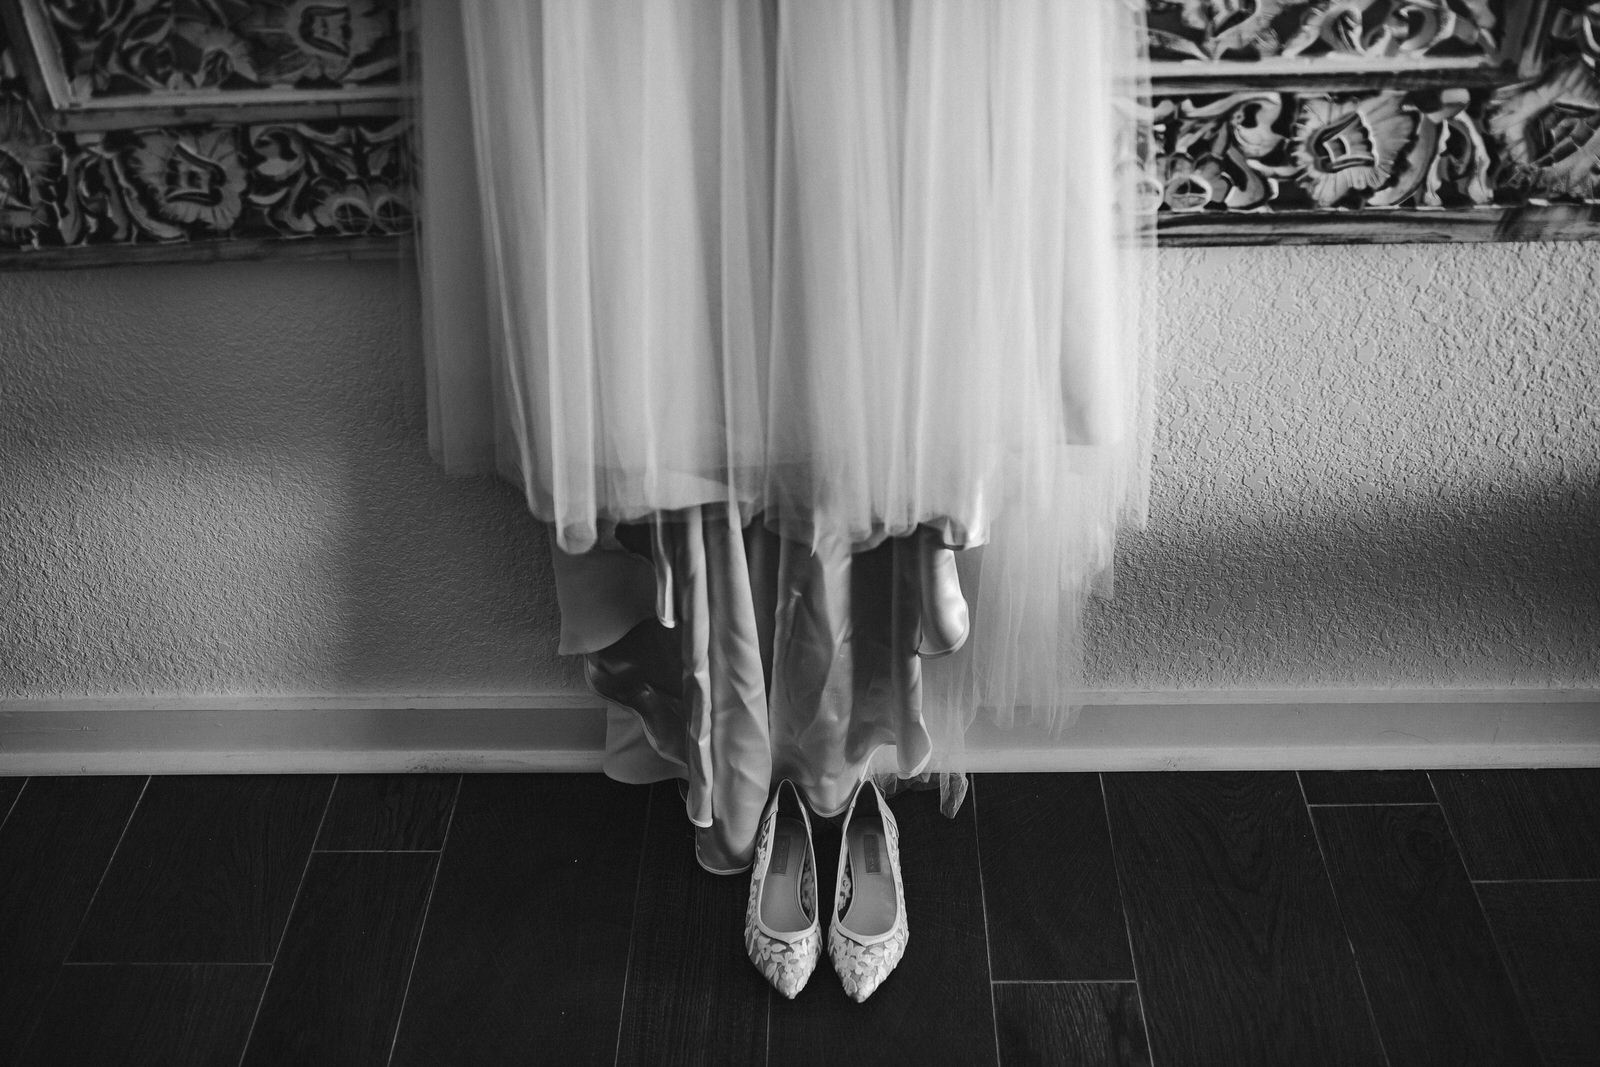 dress_shoes_lgbtq_wedding_photography.jpg